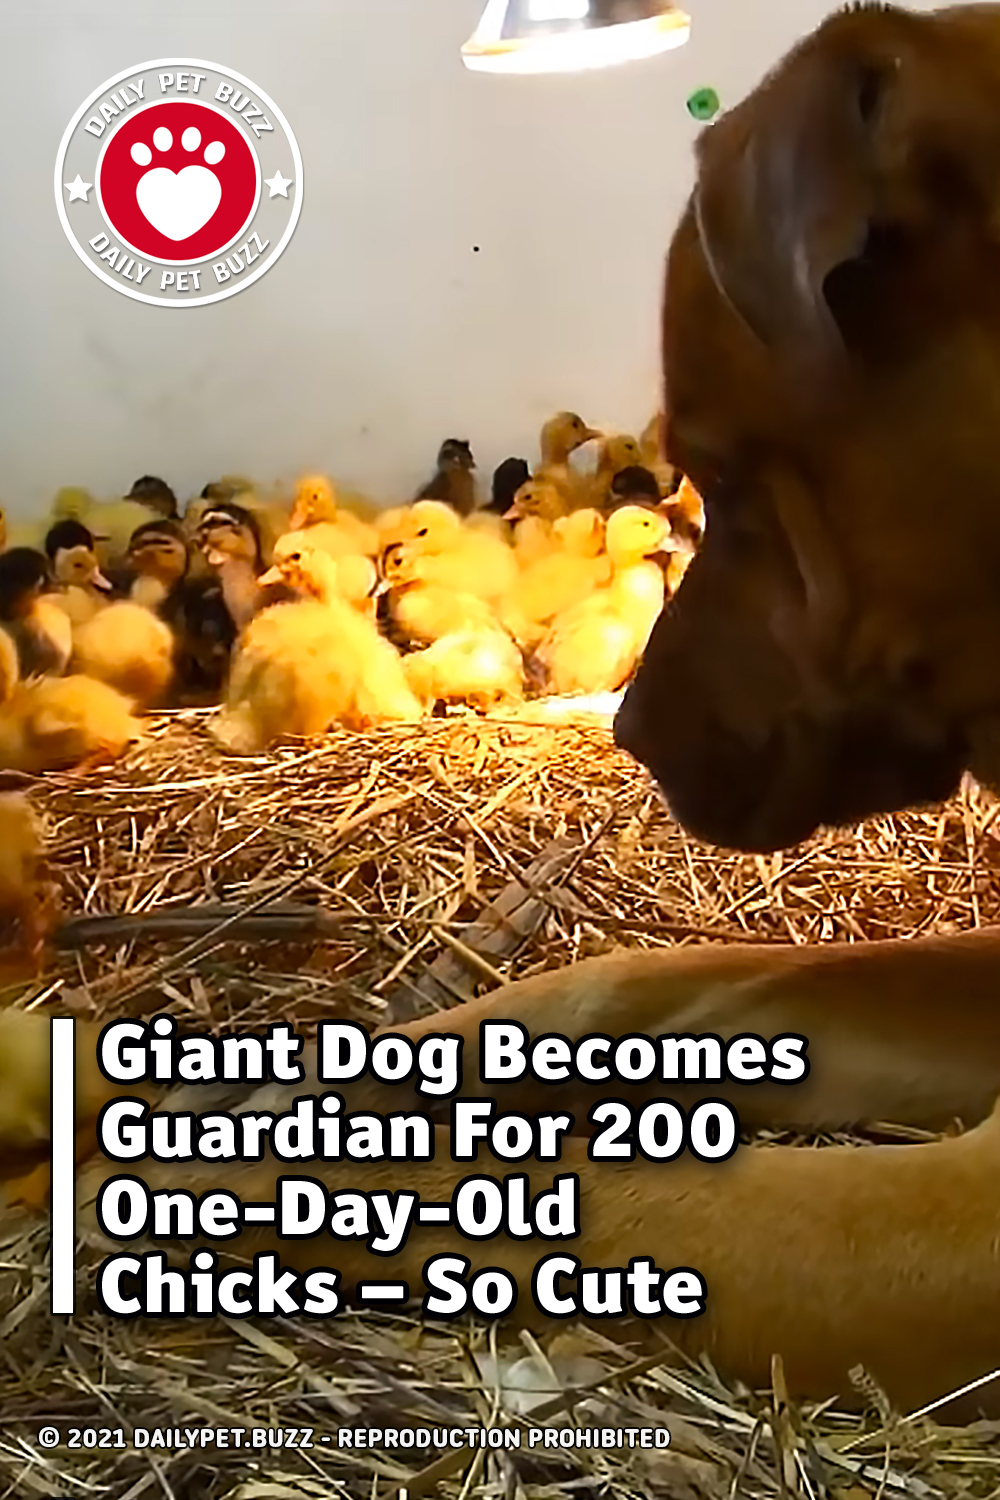 Giant Dog Becomes Guardian For 200 One-Day-Old Chicks – So Cute